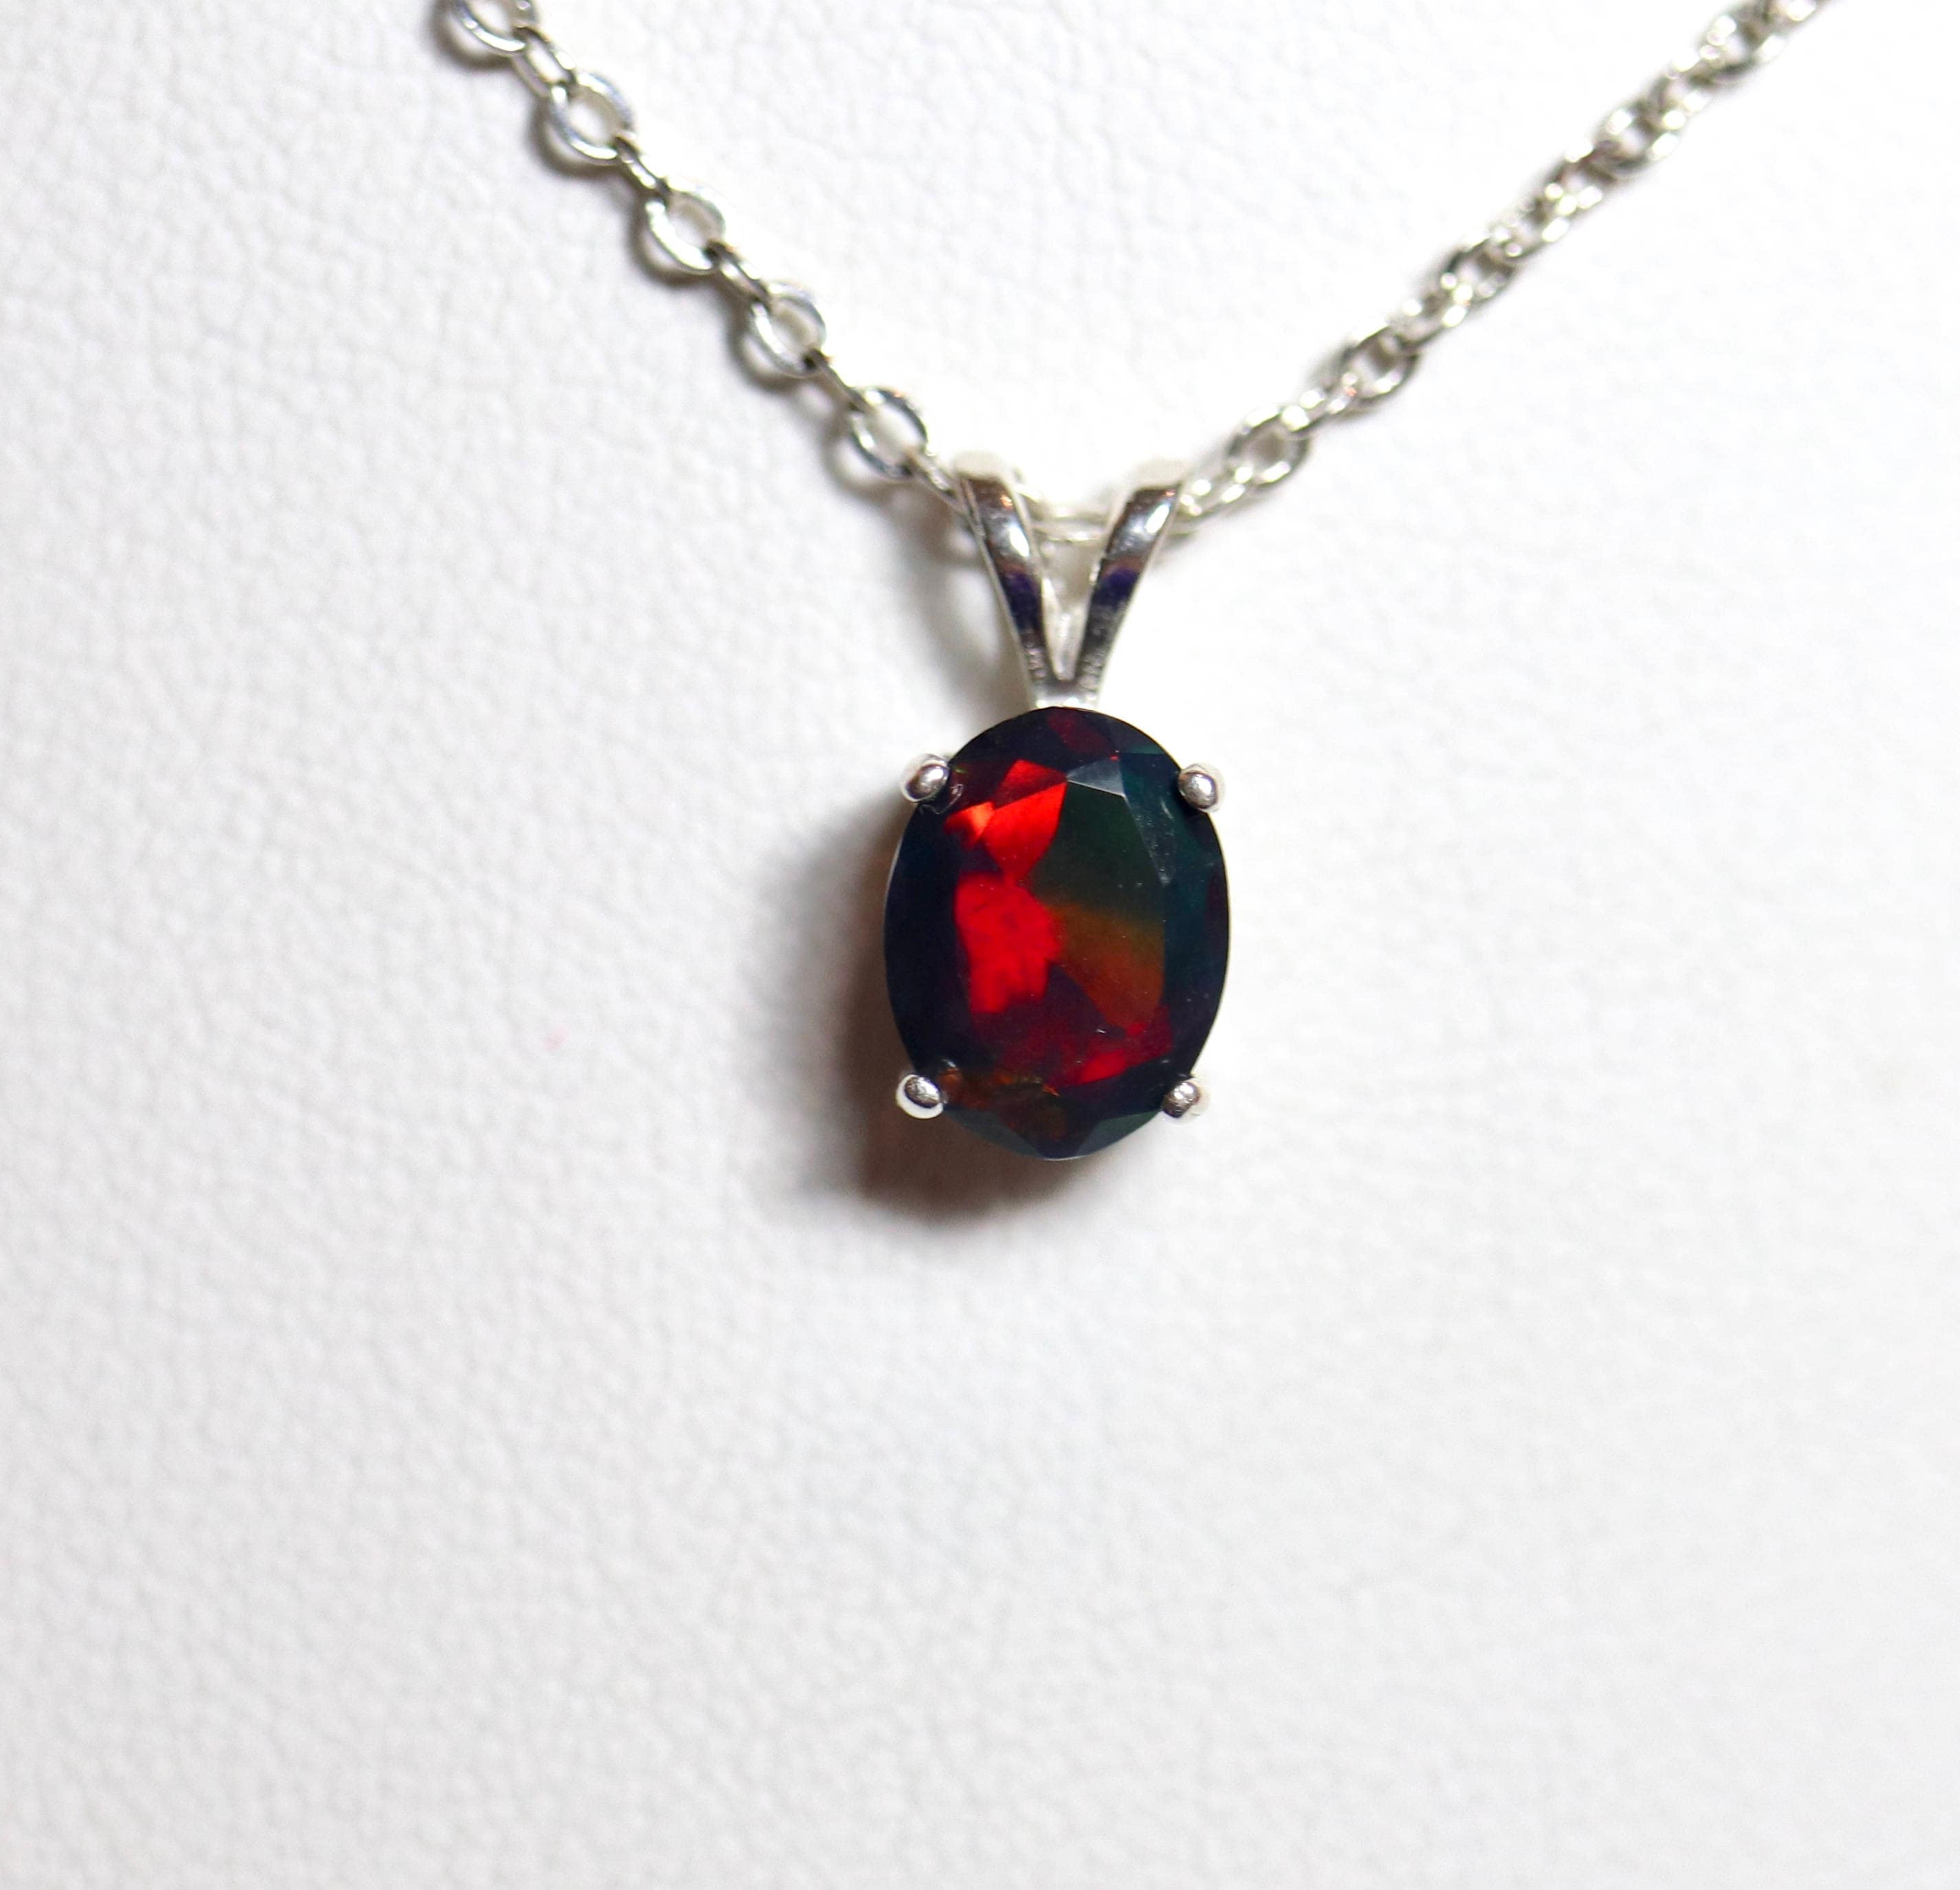 Natural black opal necklace made with primarily red colored opal 1 aloadofball Choice Image